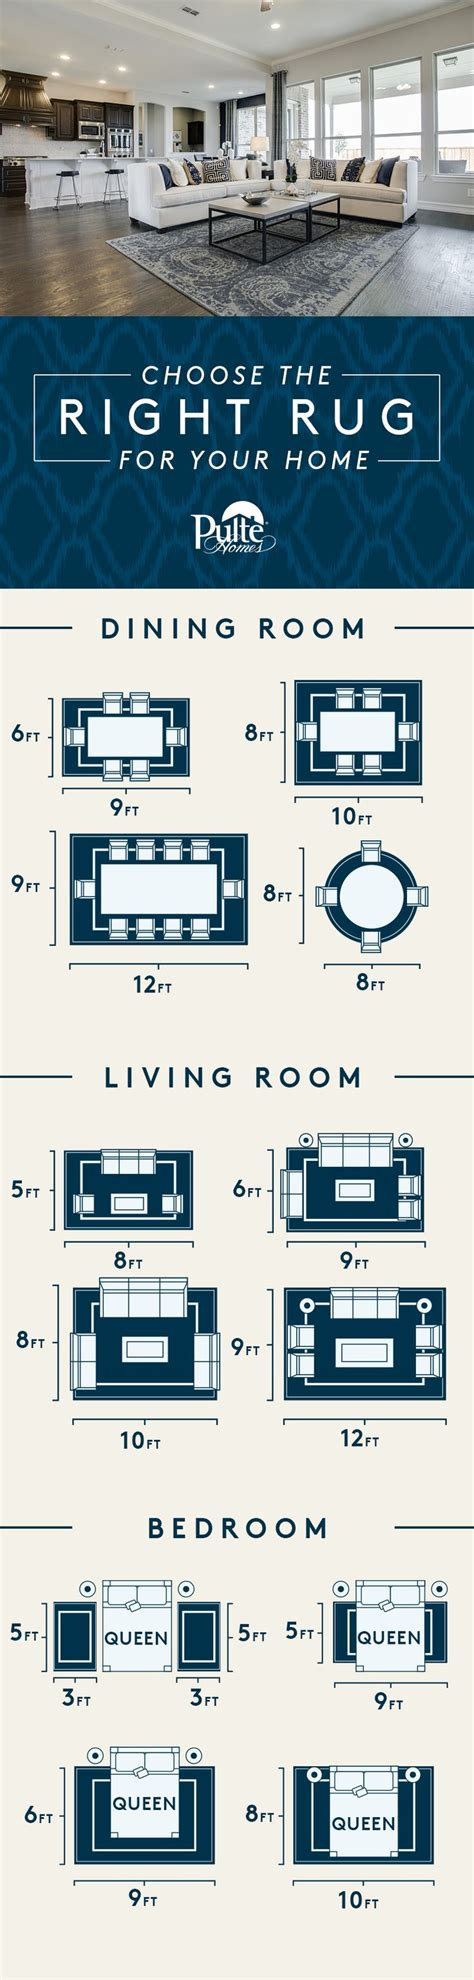 where to put a rug in a bedroom 17 best ideas about bedroom area rugs on pinterest designer rugs apartment size